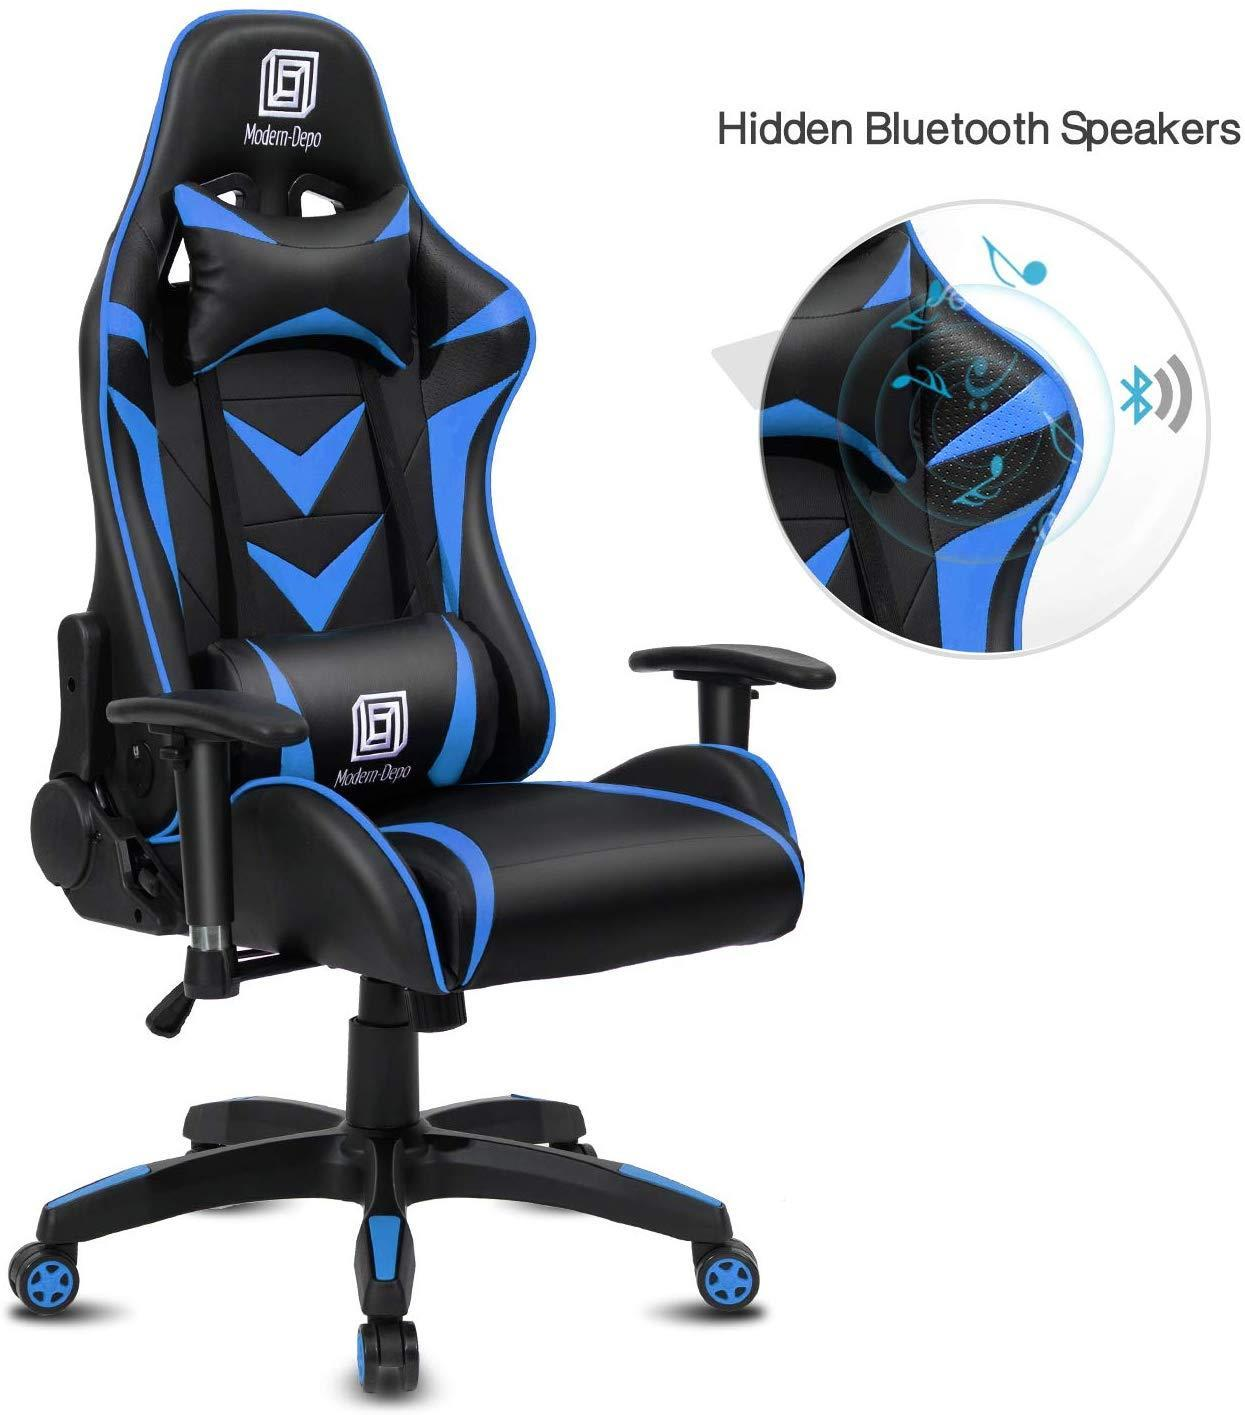 Modern-Depo High-Back Swivel Gaming Chair Recliner with Bluetooth